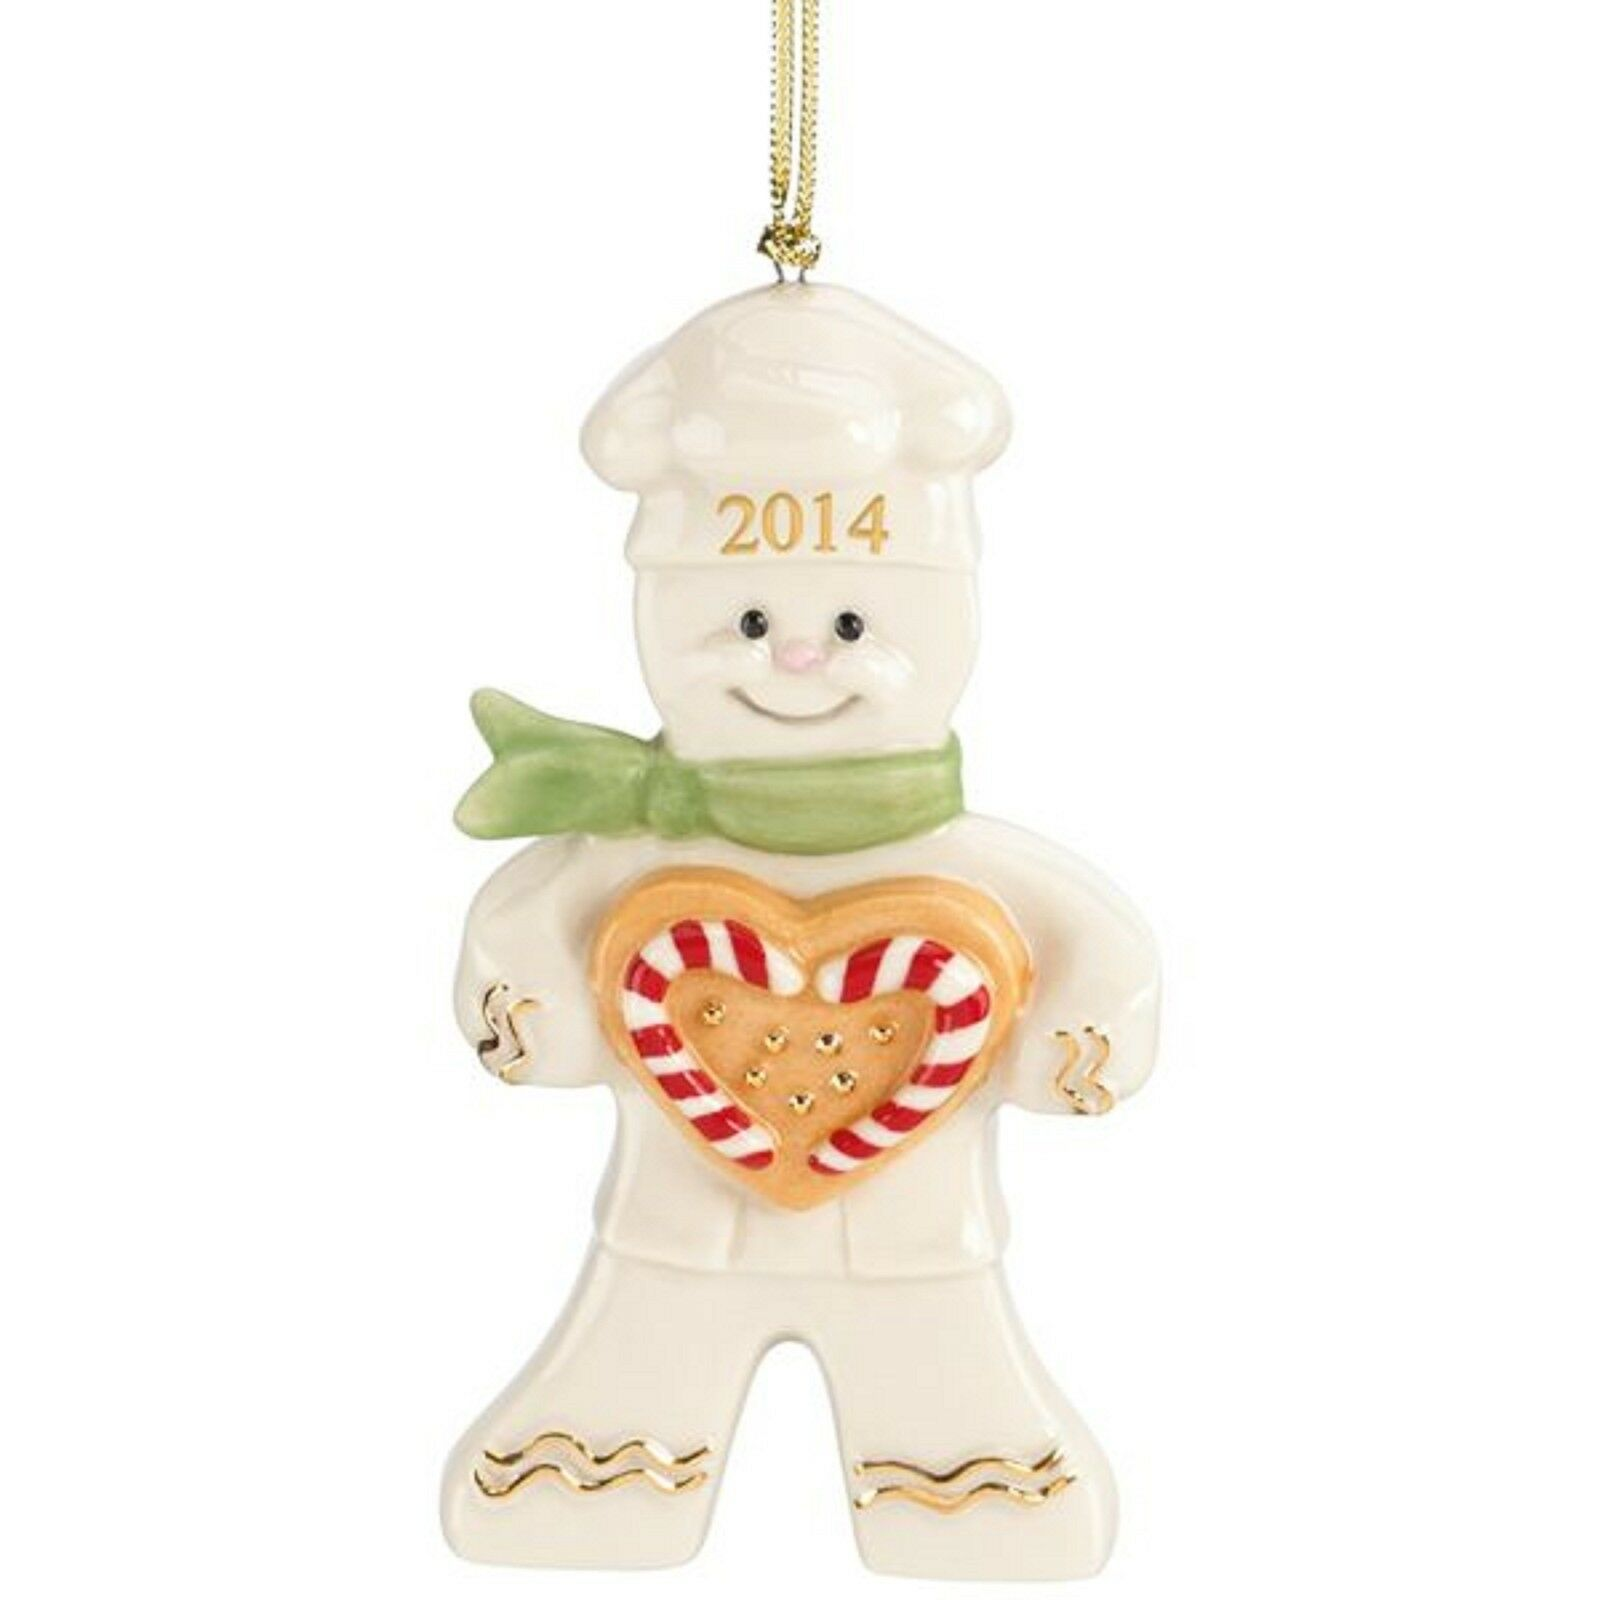 Lenox 2014 Gingerbread Man Ornament Annual Christmas Peppermint Love Baker NEW